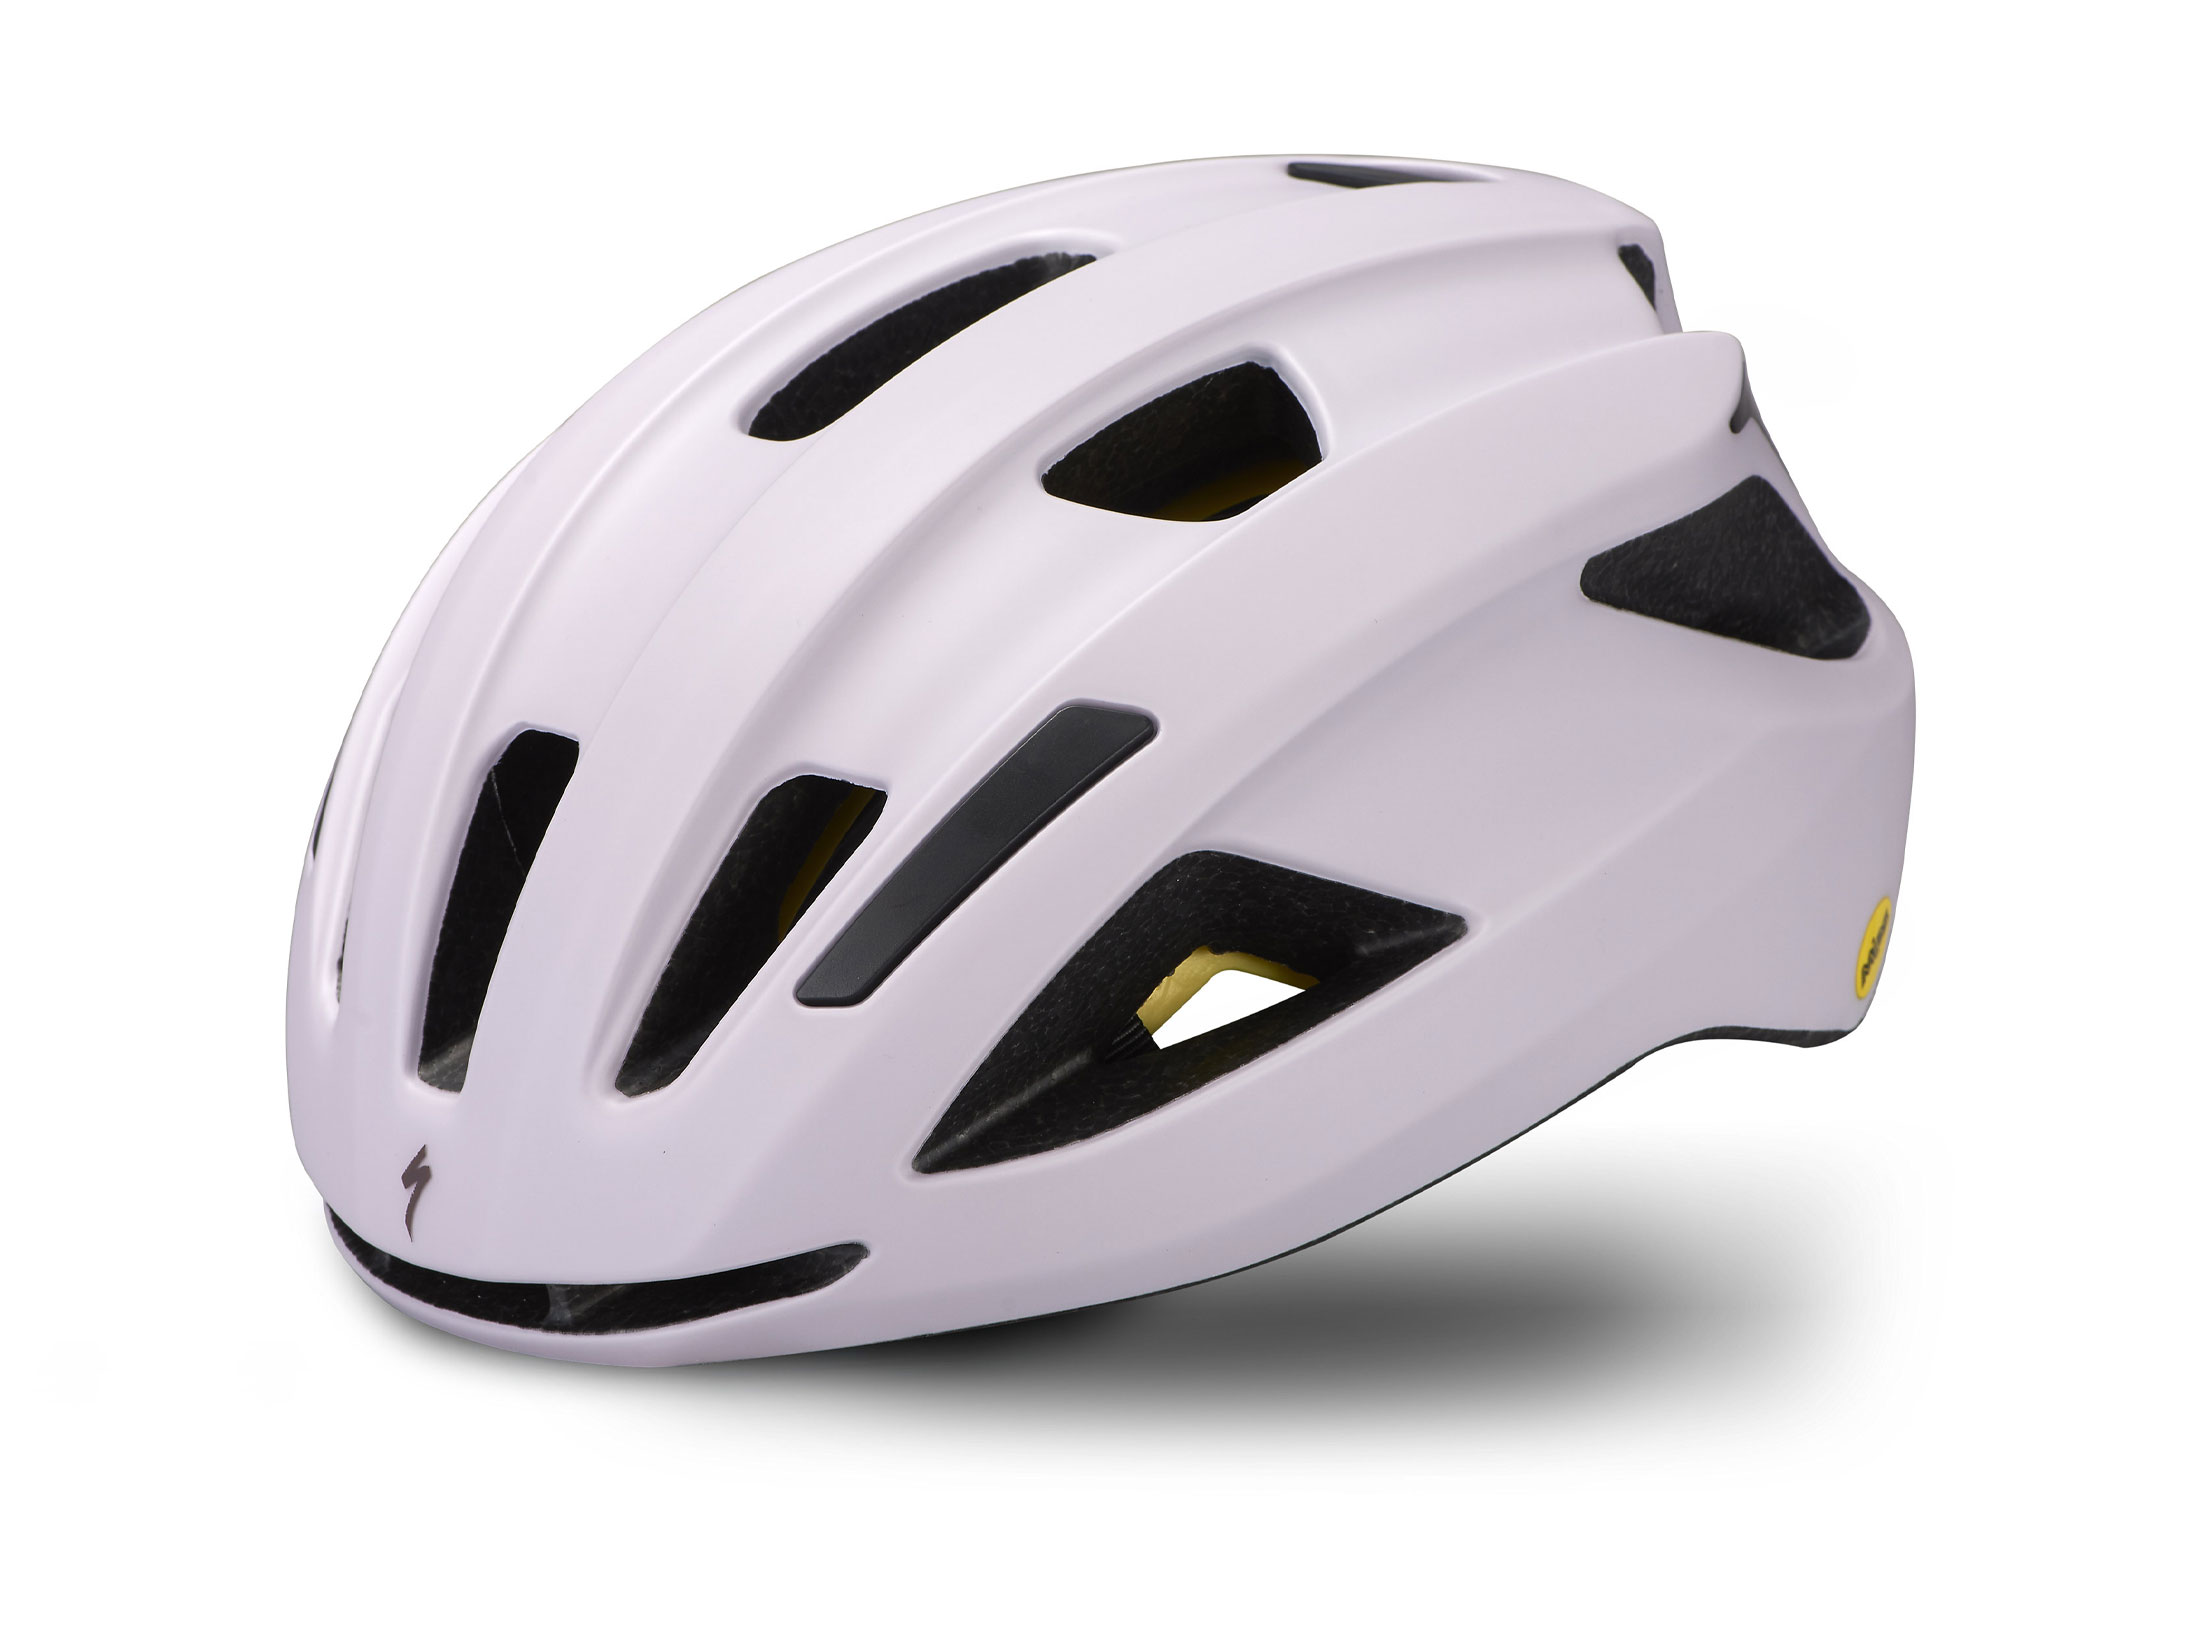 Specialized Align II Helmet - Satin Clay / Satin Cast Umber